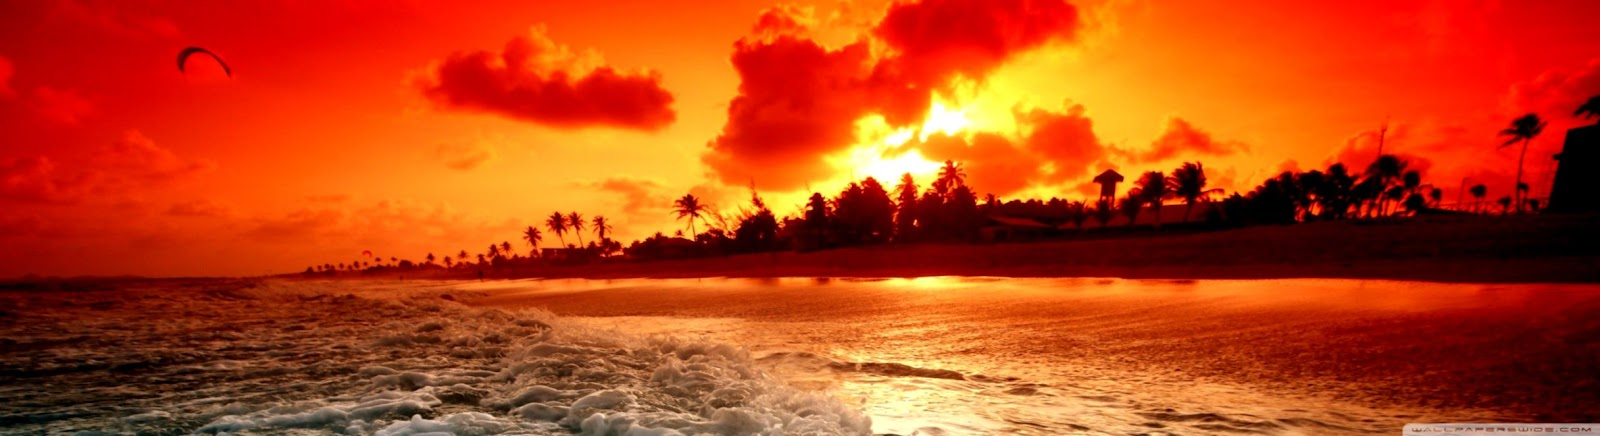 Beach Sunset Hd